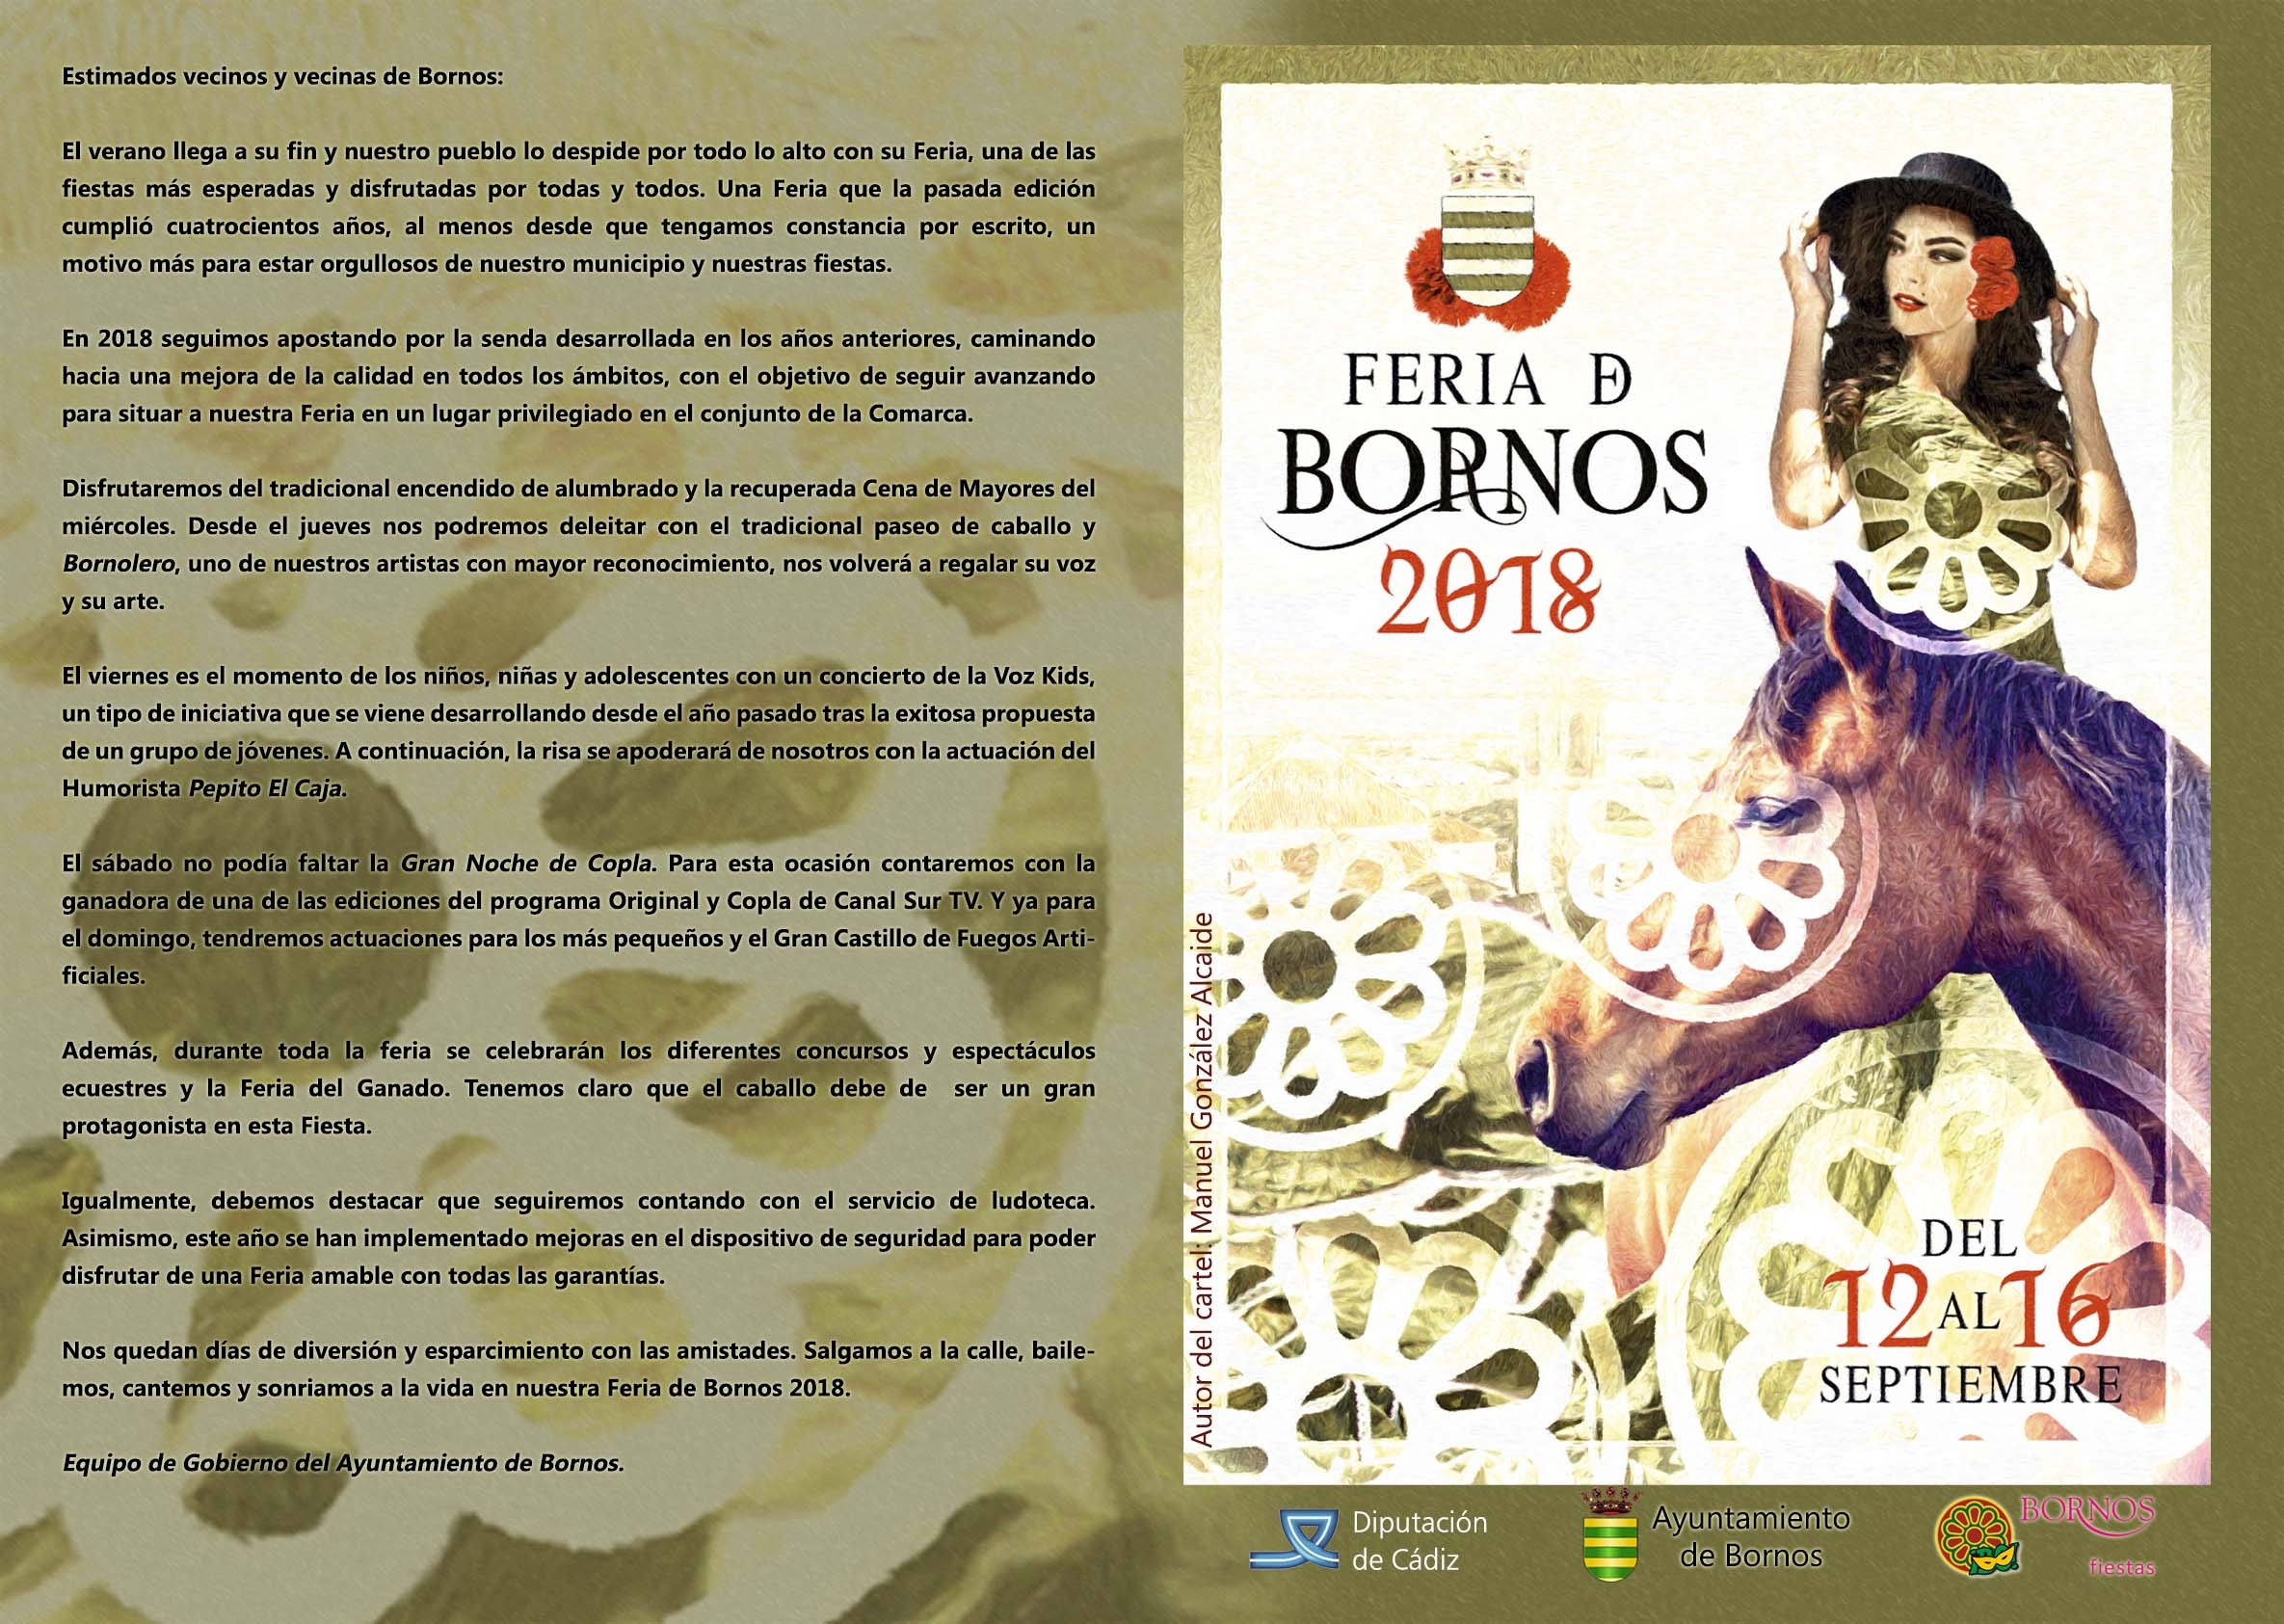 sites/default/files/2018/agenda/ferias-y-fiestas/bornos/feria-bornossept-cartel.JPG